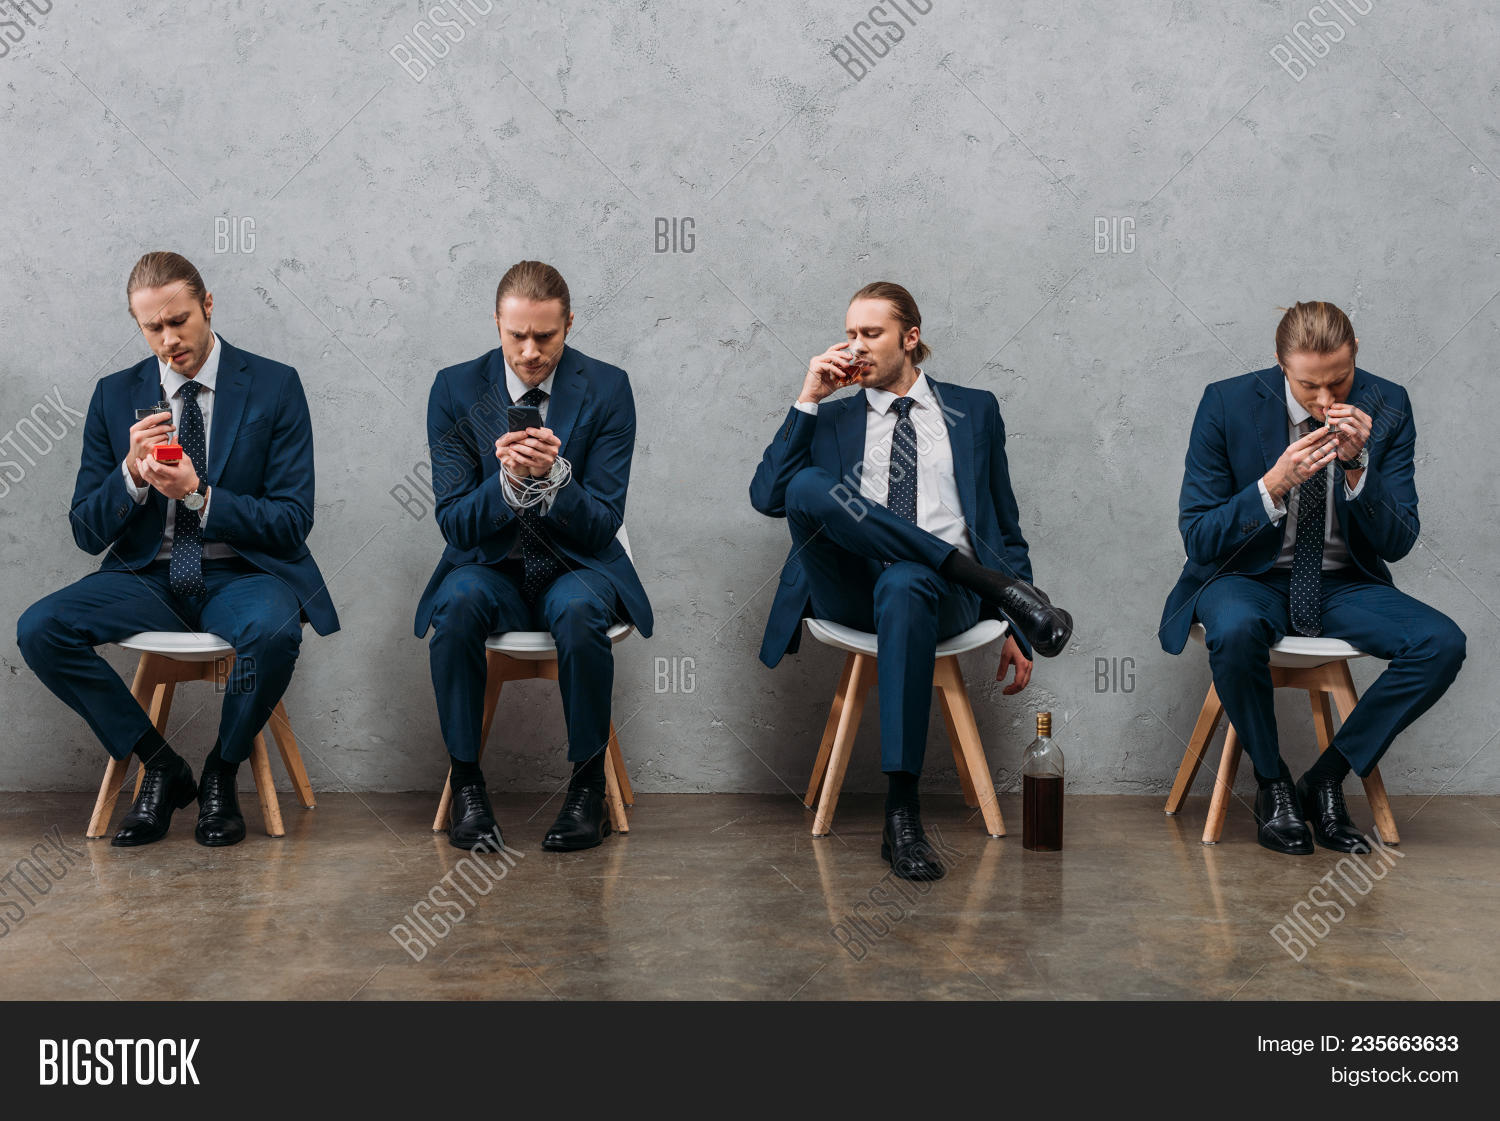 collage of cloned businessman sitting on chairs and showing various addictions